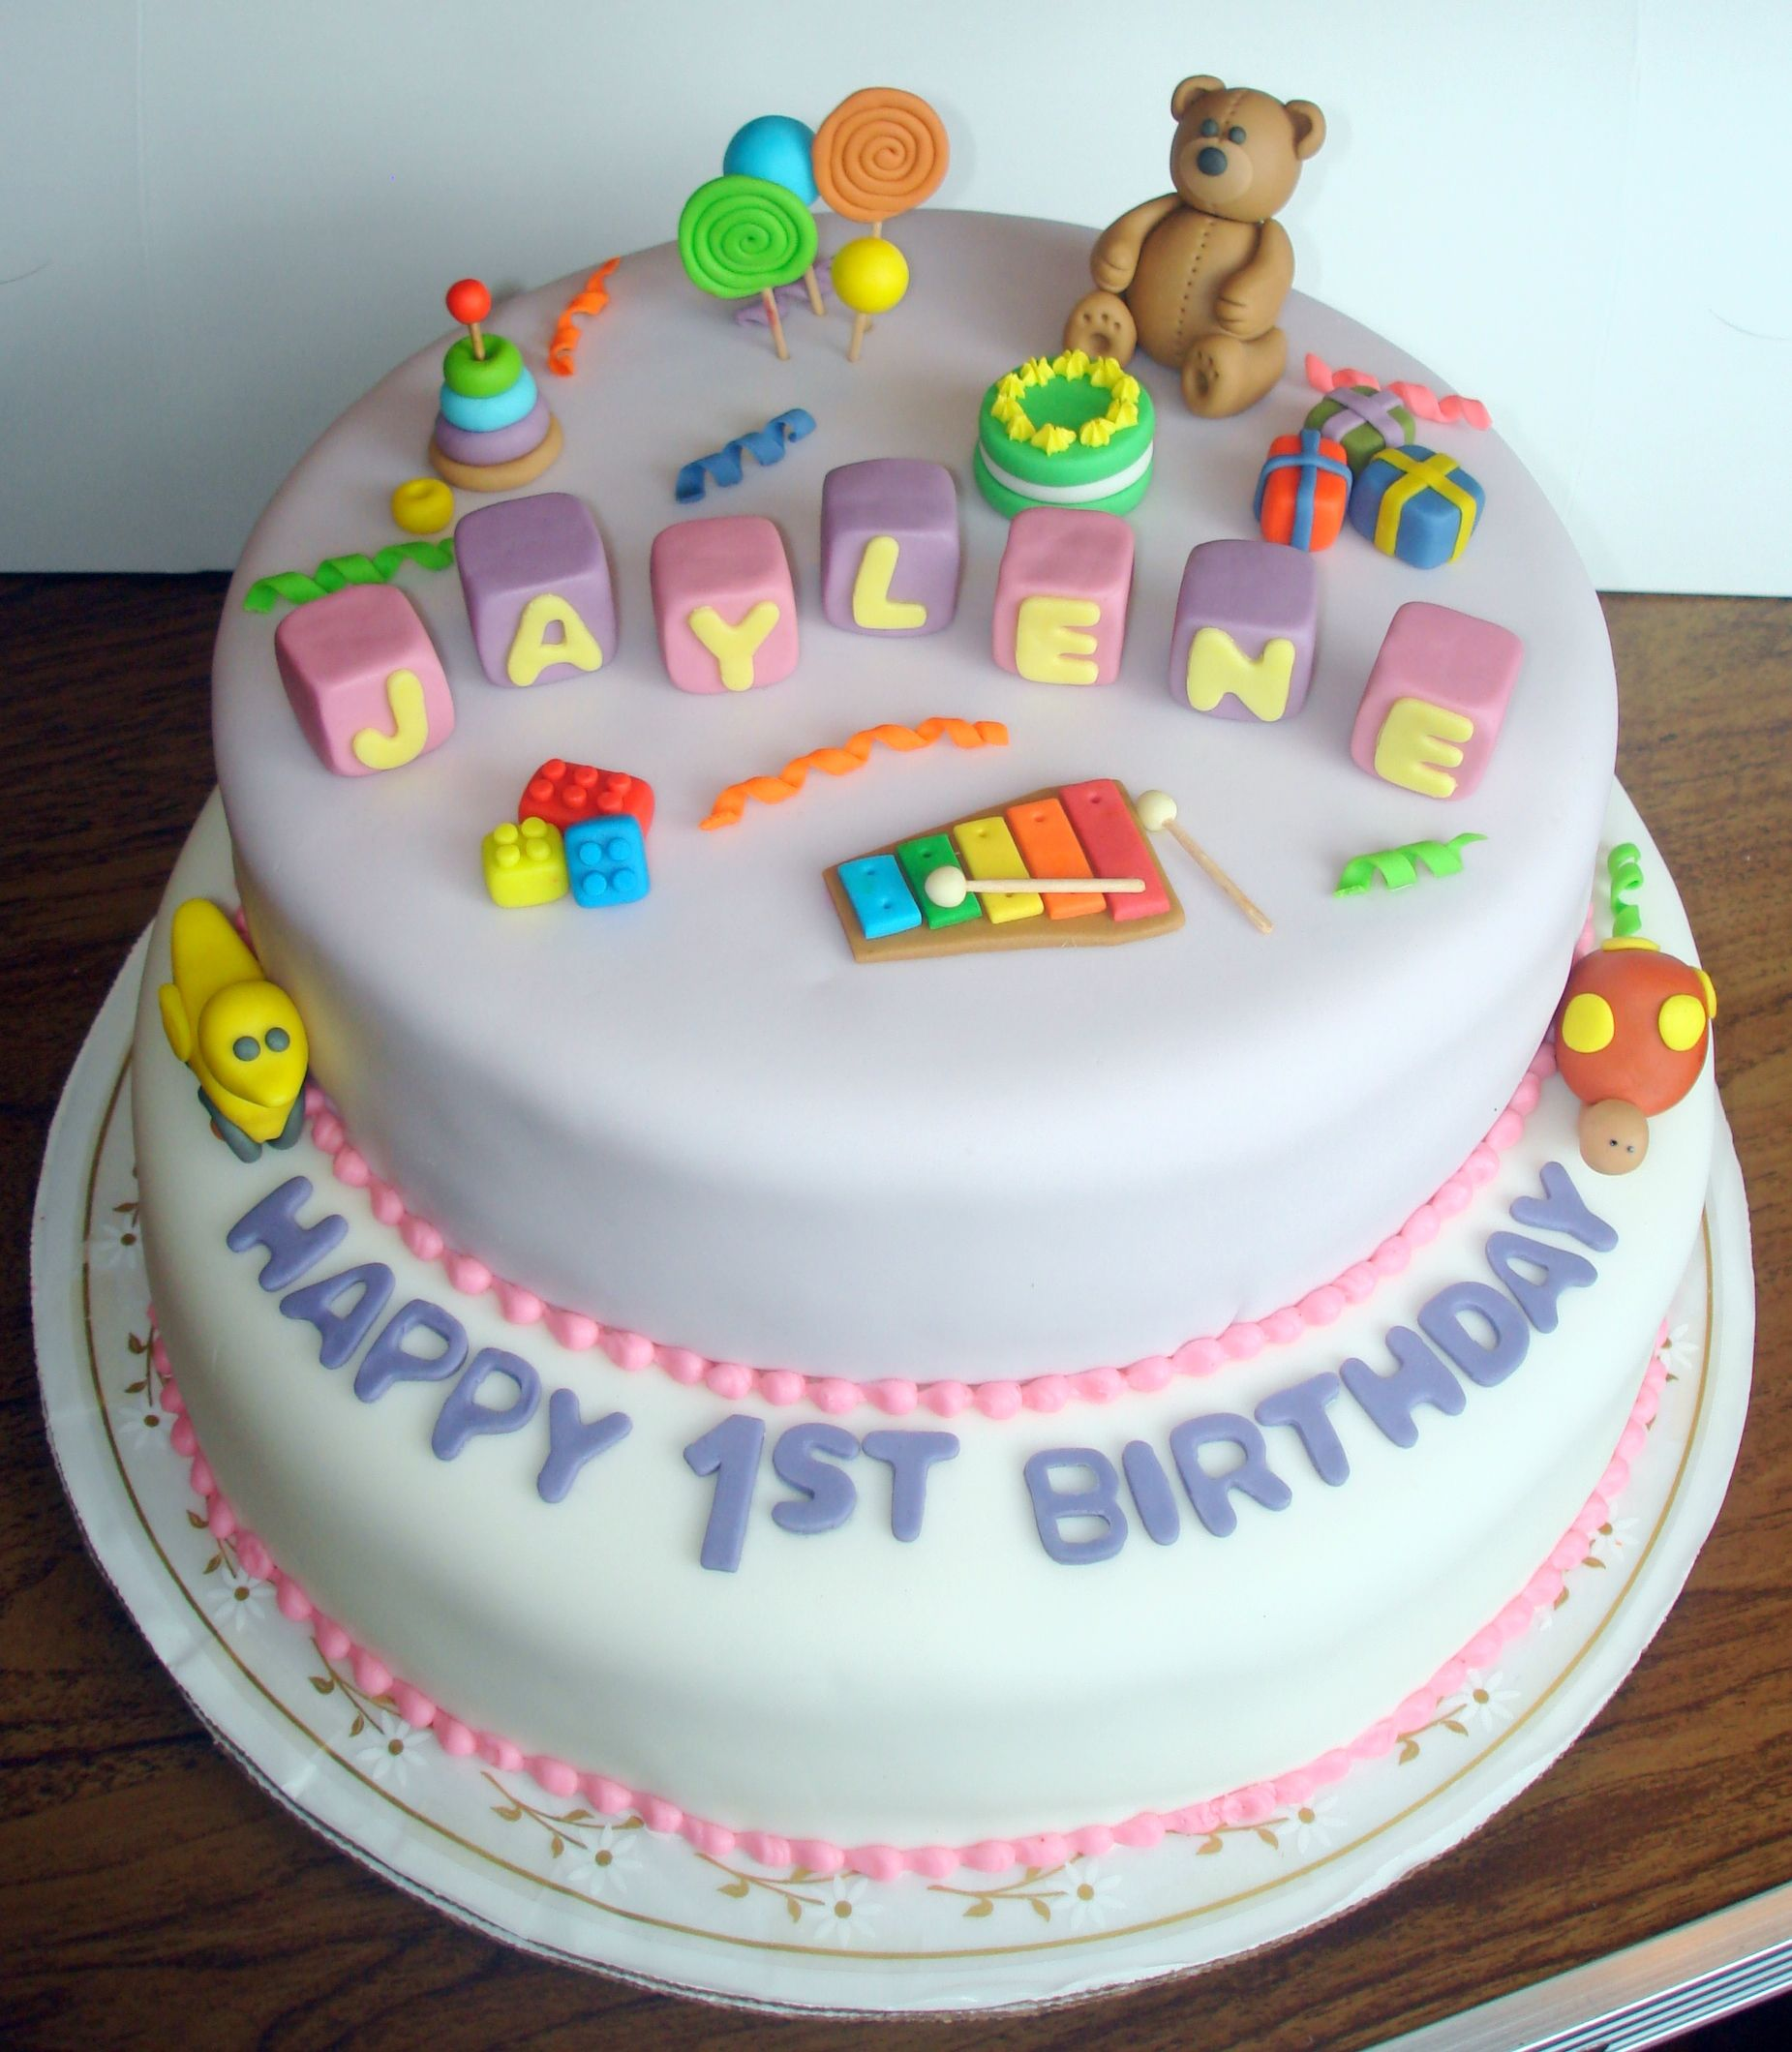 1st birthday cake Cakes Pinterest Birthday cakes Cake and